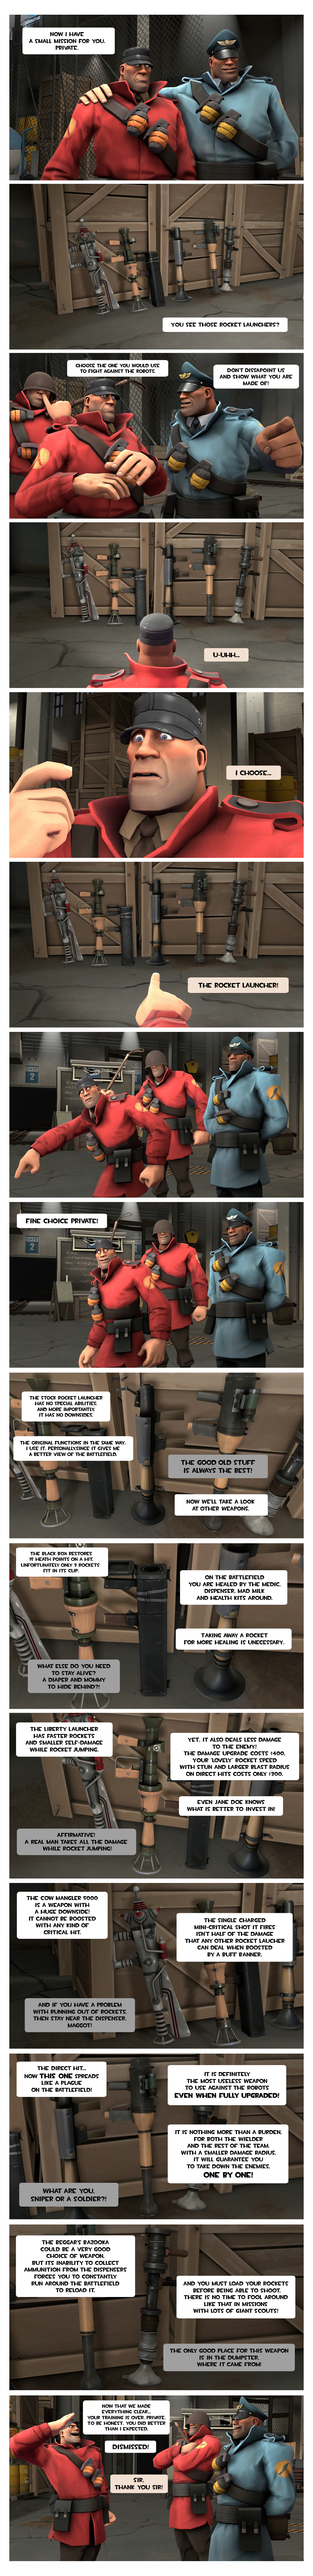 Strict Soldier's guide for MvM: Soldier (part 3) by Menaria